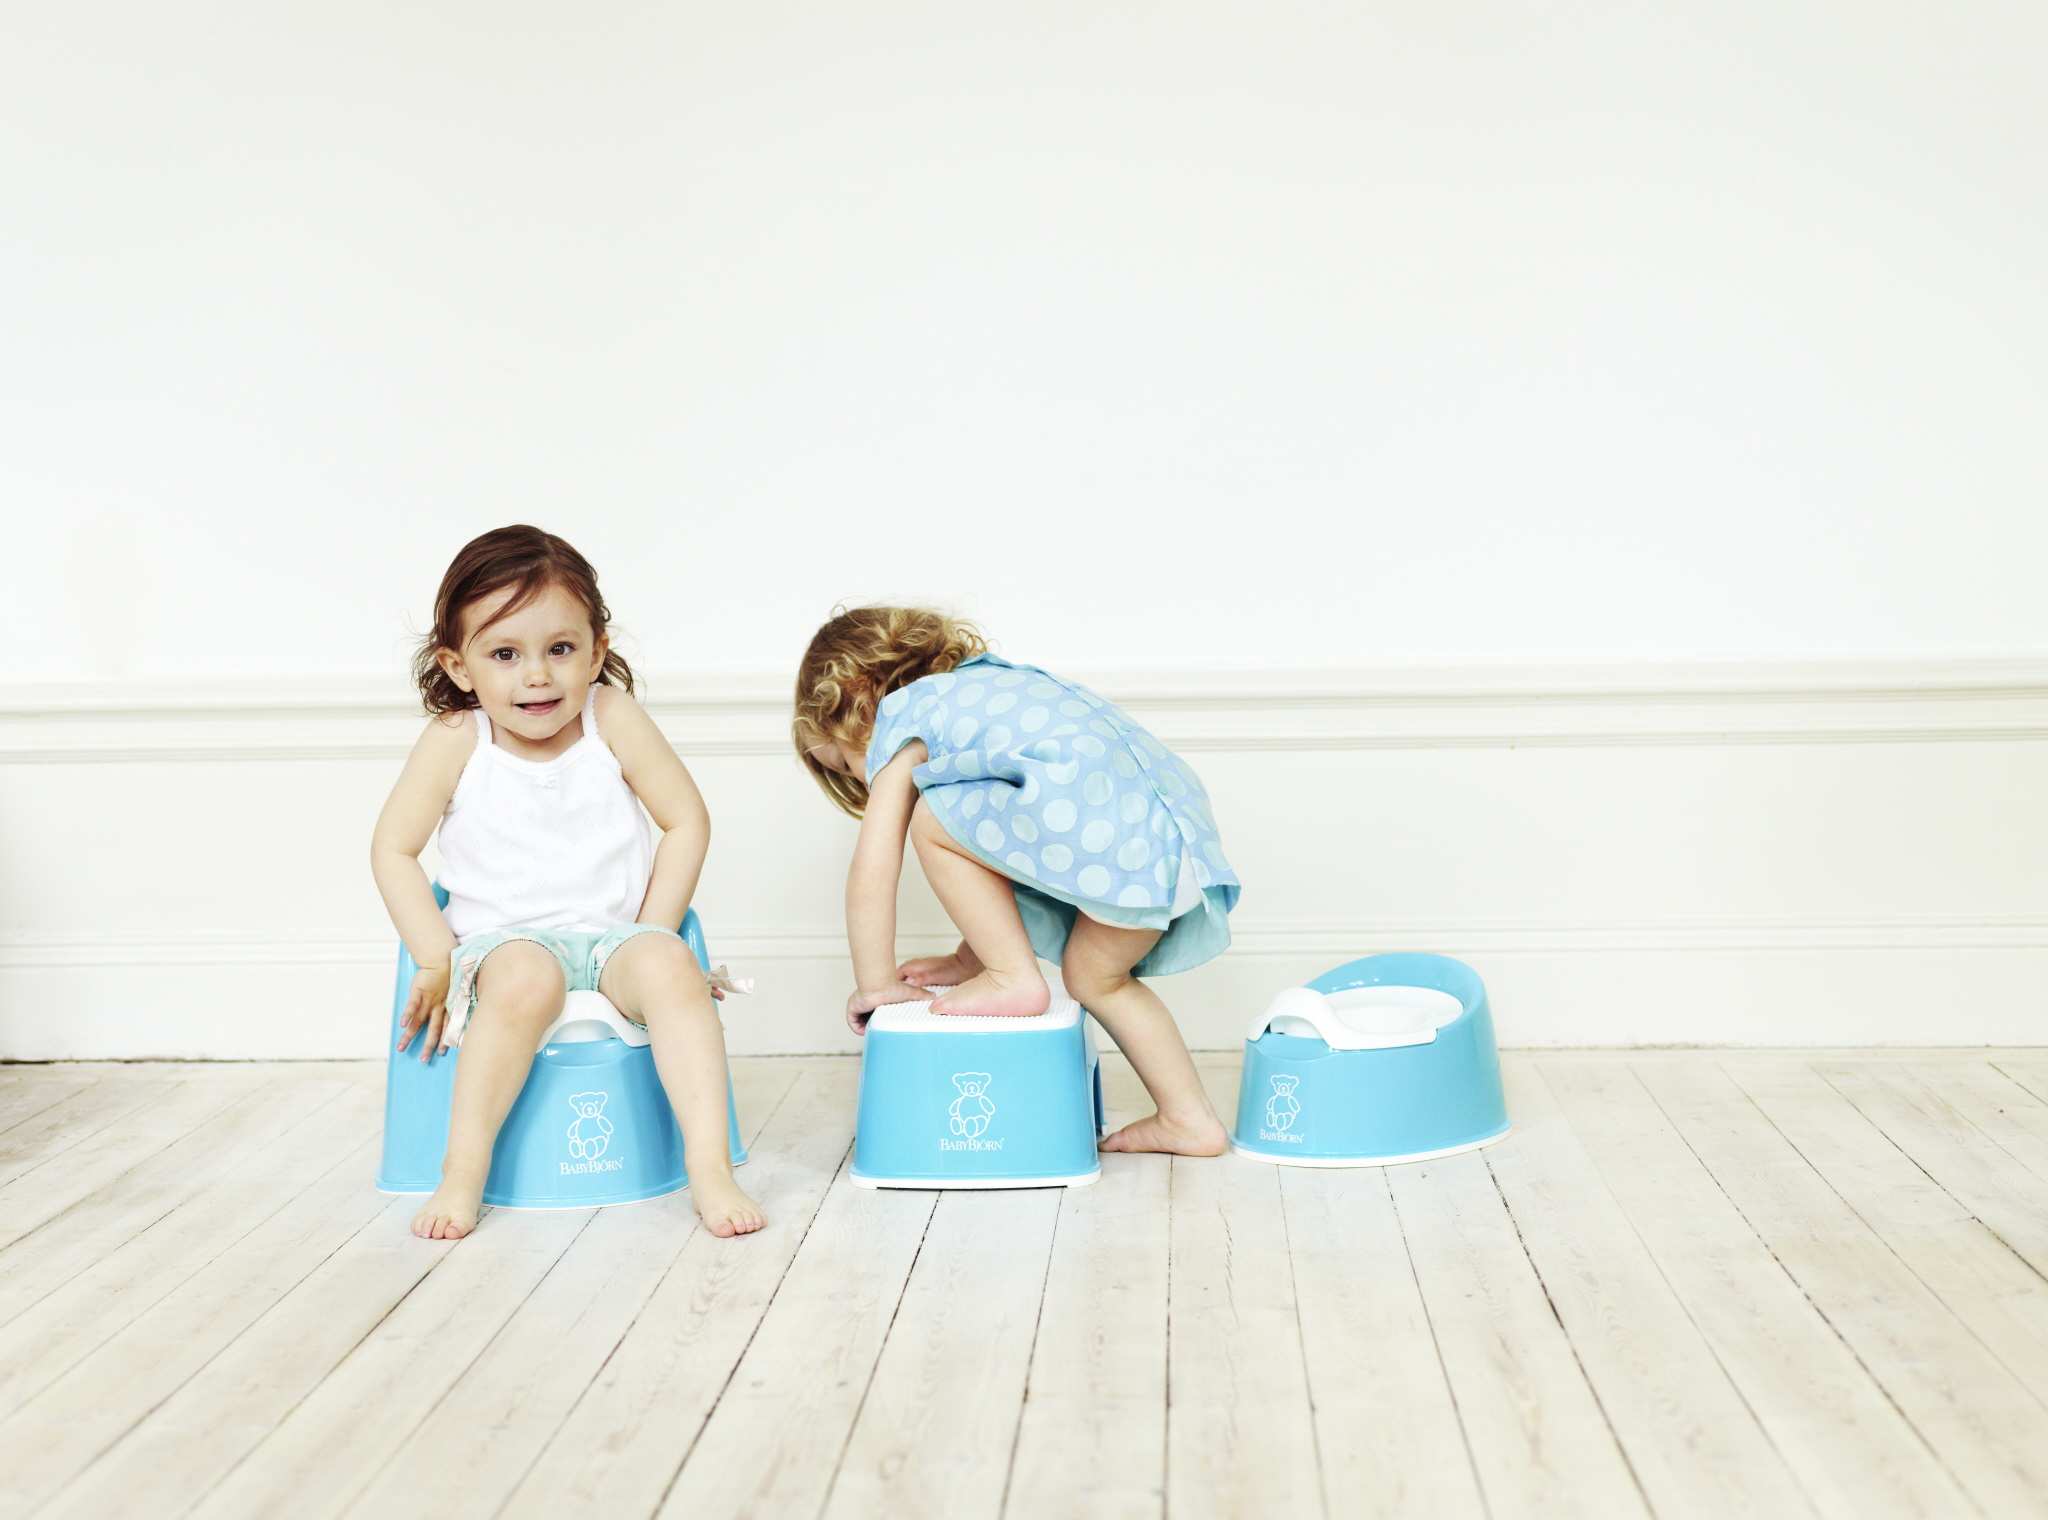 BabyBjorn Turquoise Bathroom products.JPG